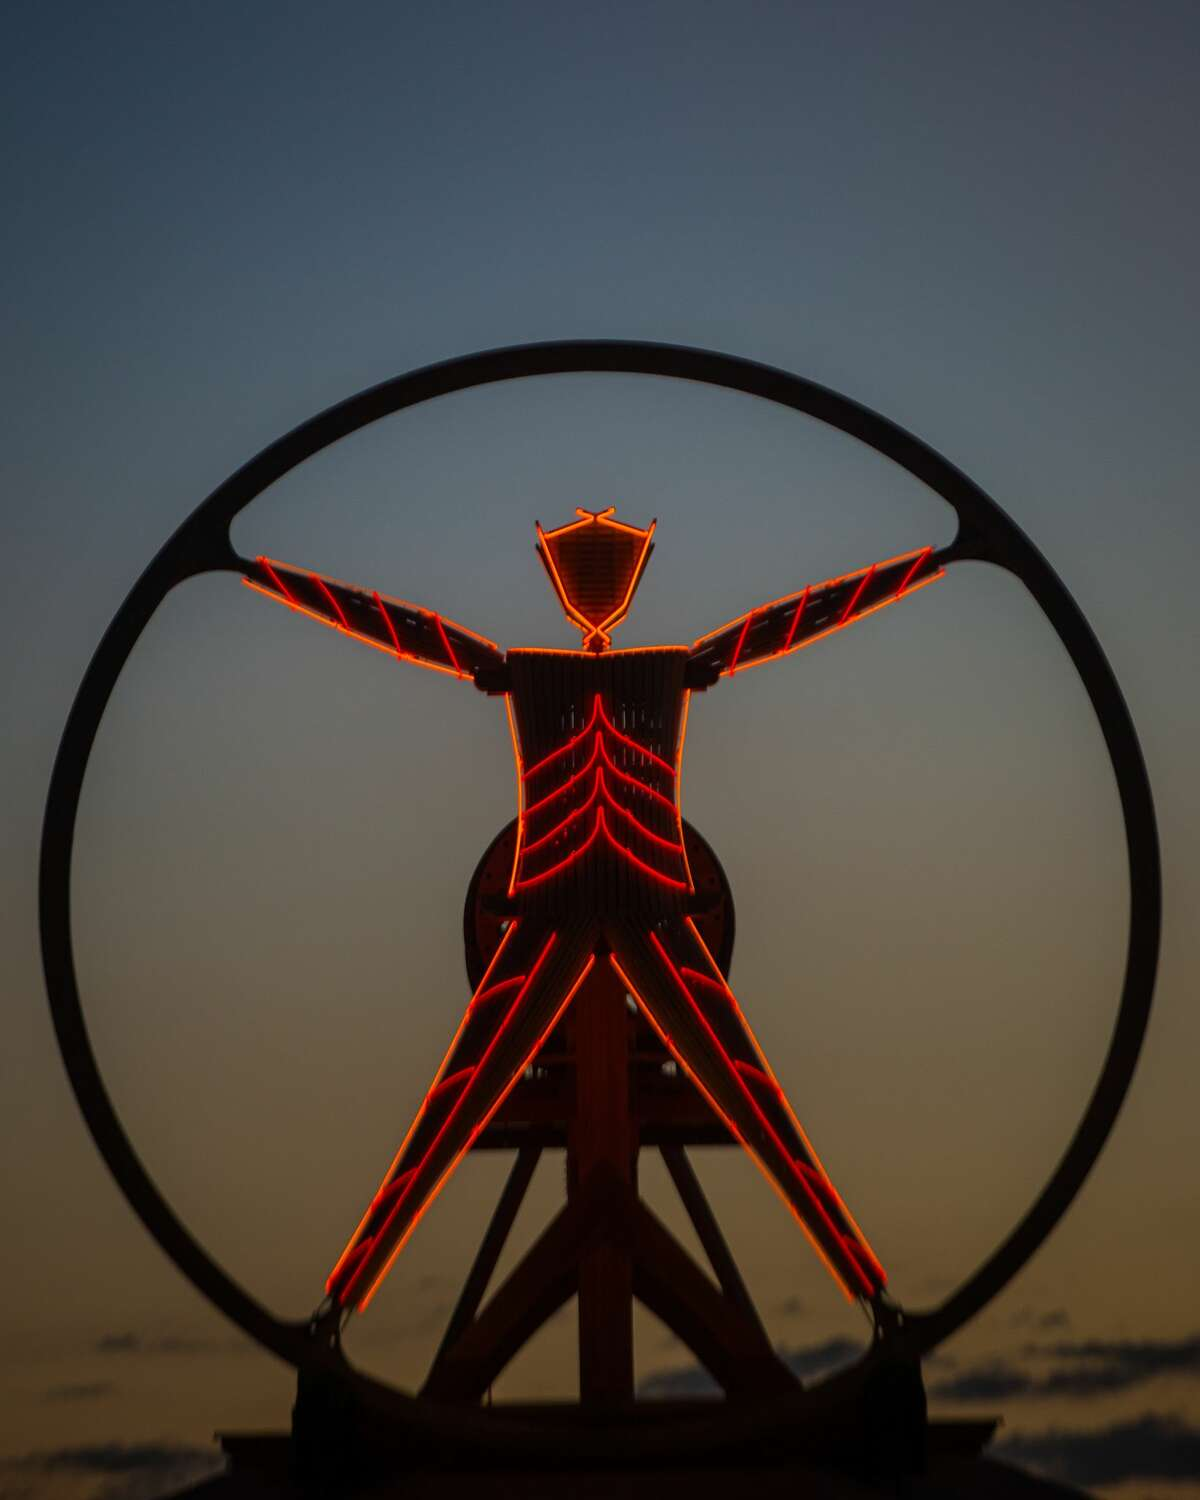 Artwork at Burning Man 2016, the largest outdoor arts festival in North America, in the Black Rock desert of Gerlach, Nevada. (